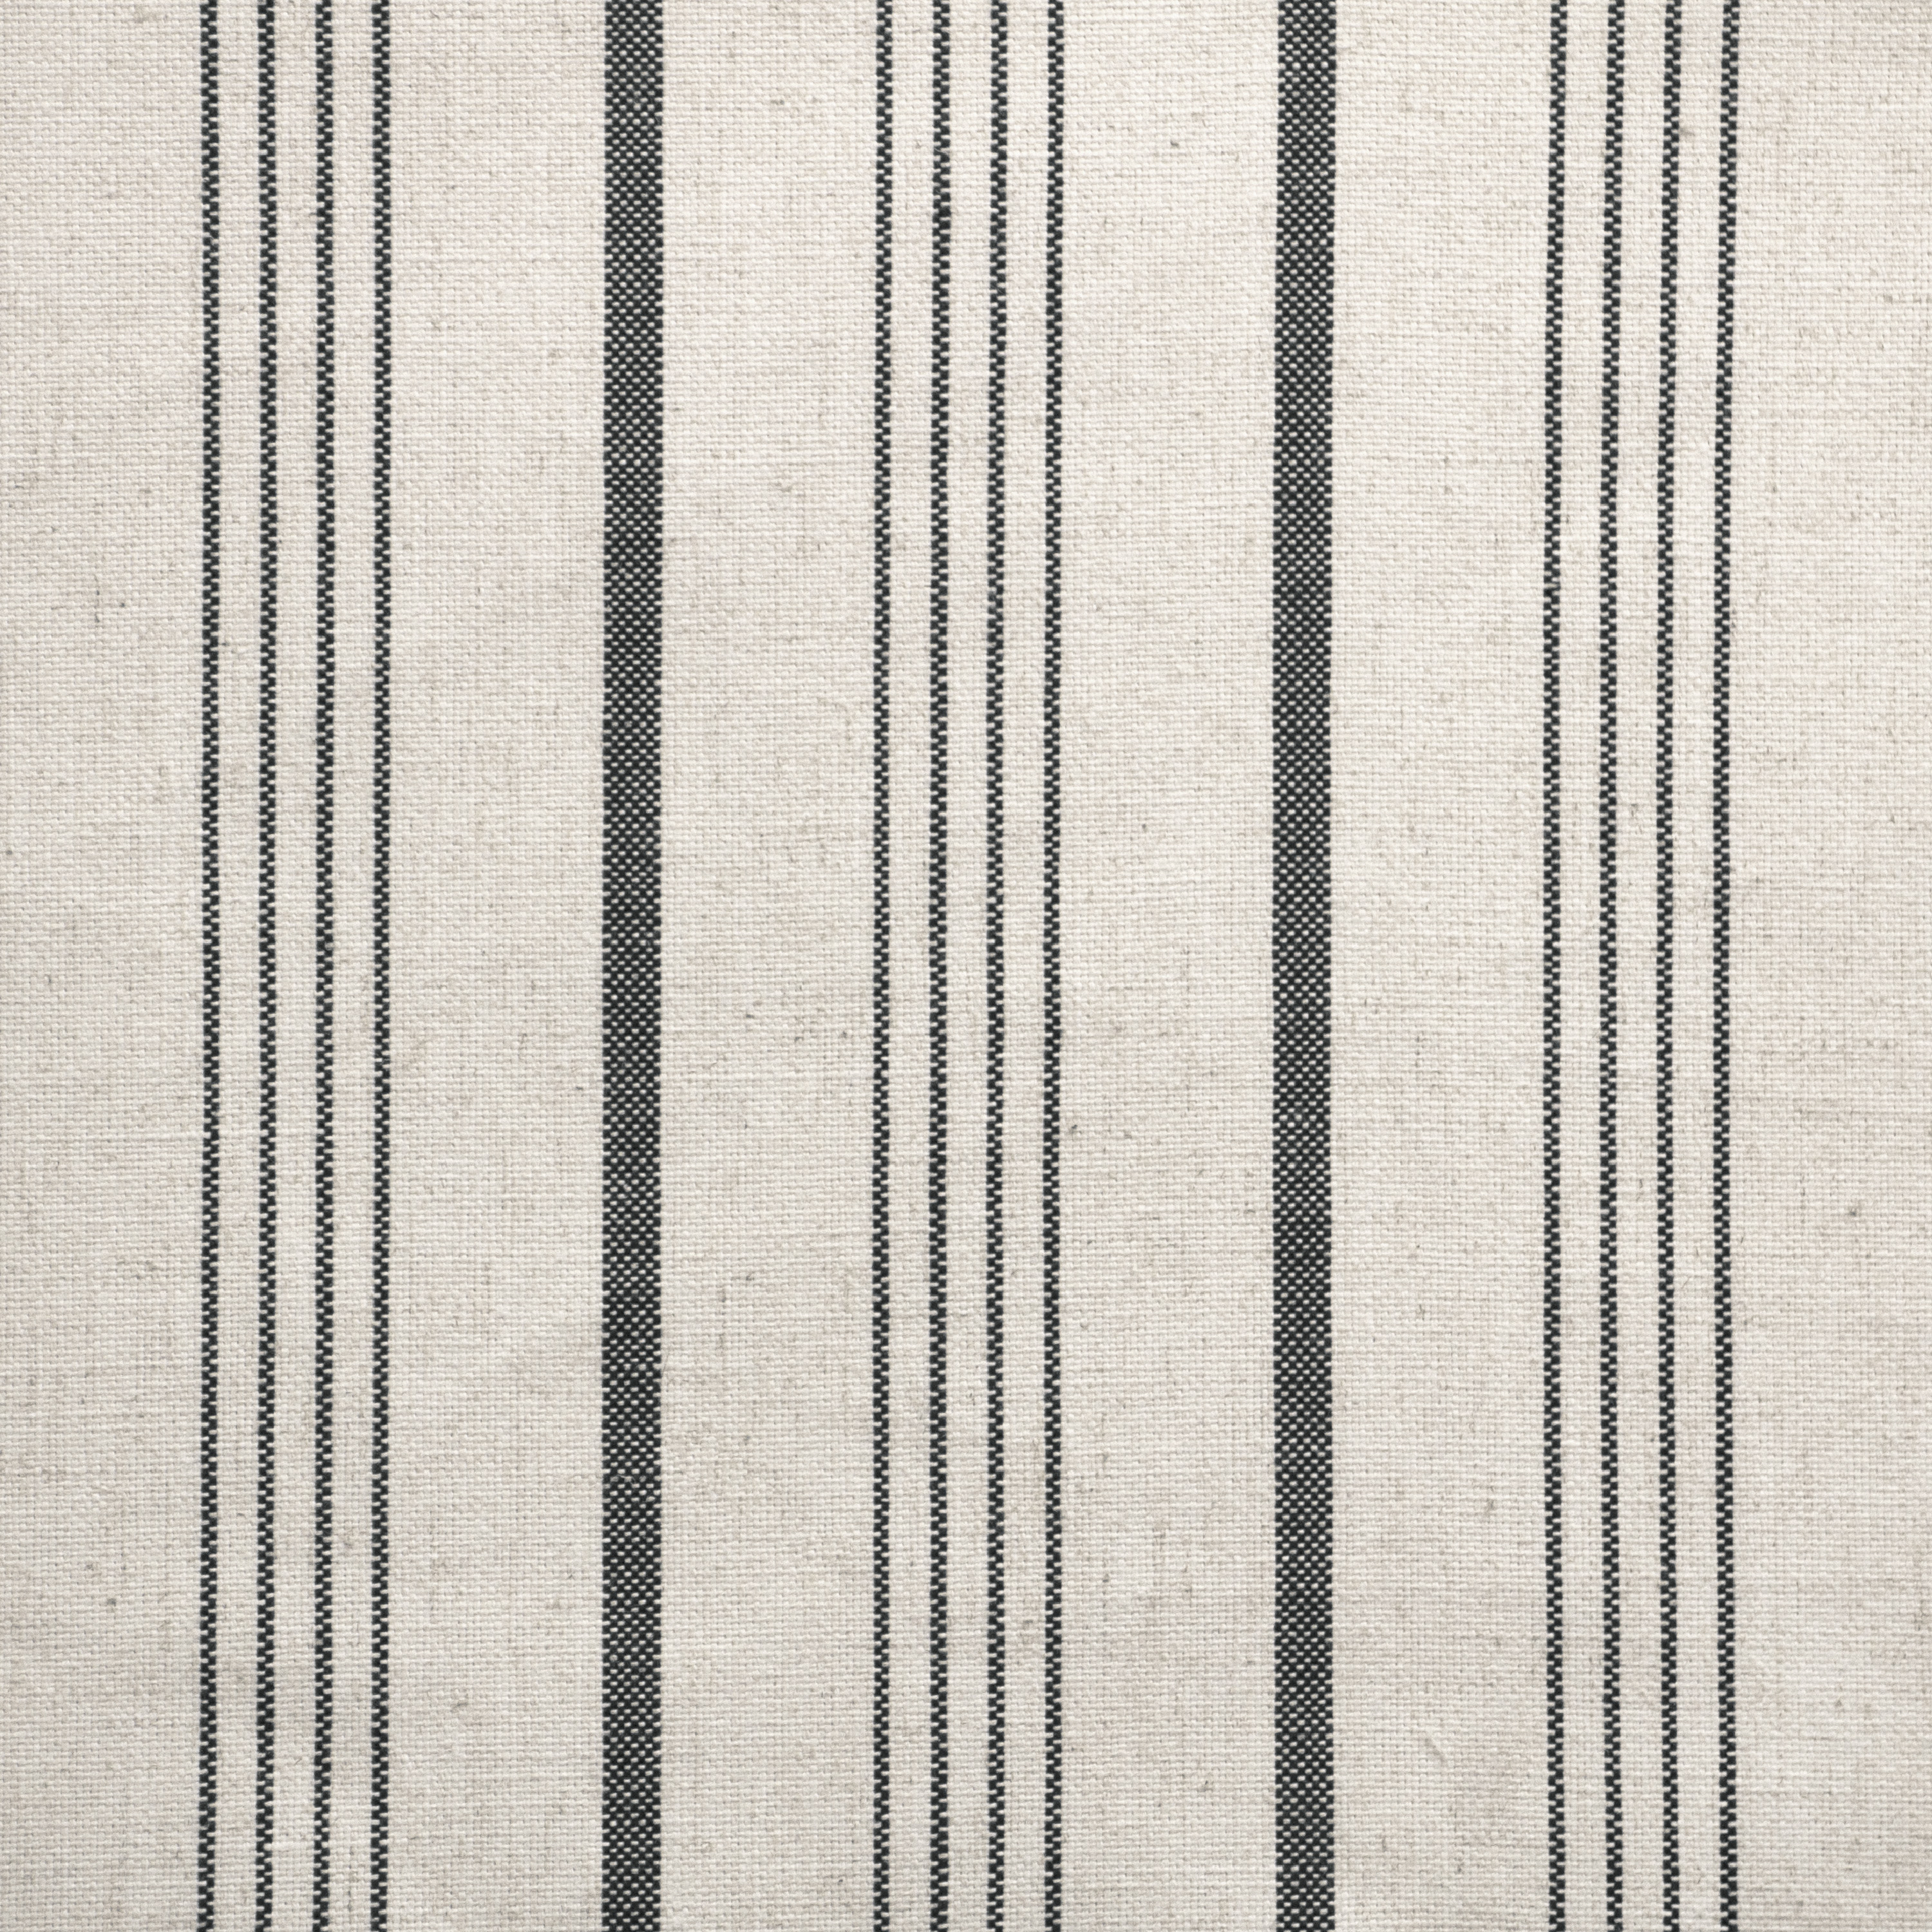 Downing Settee, Albion Stripe